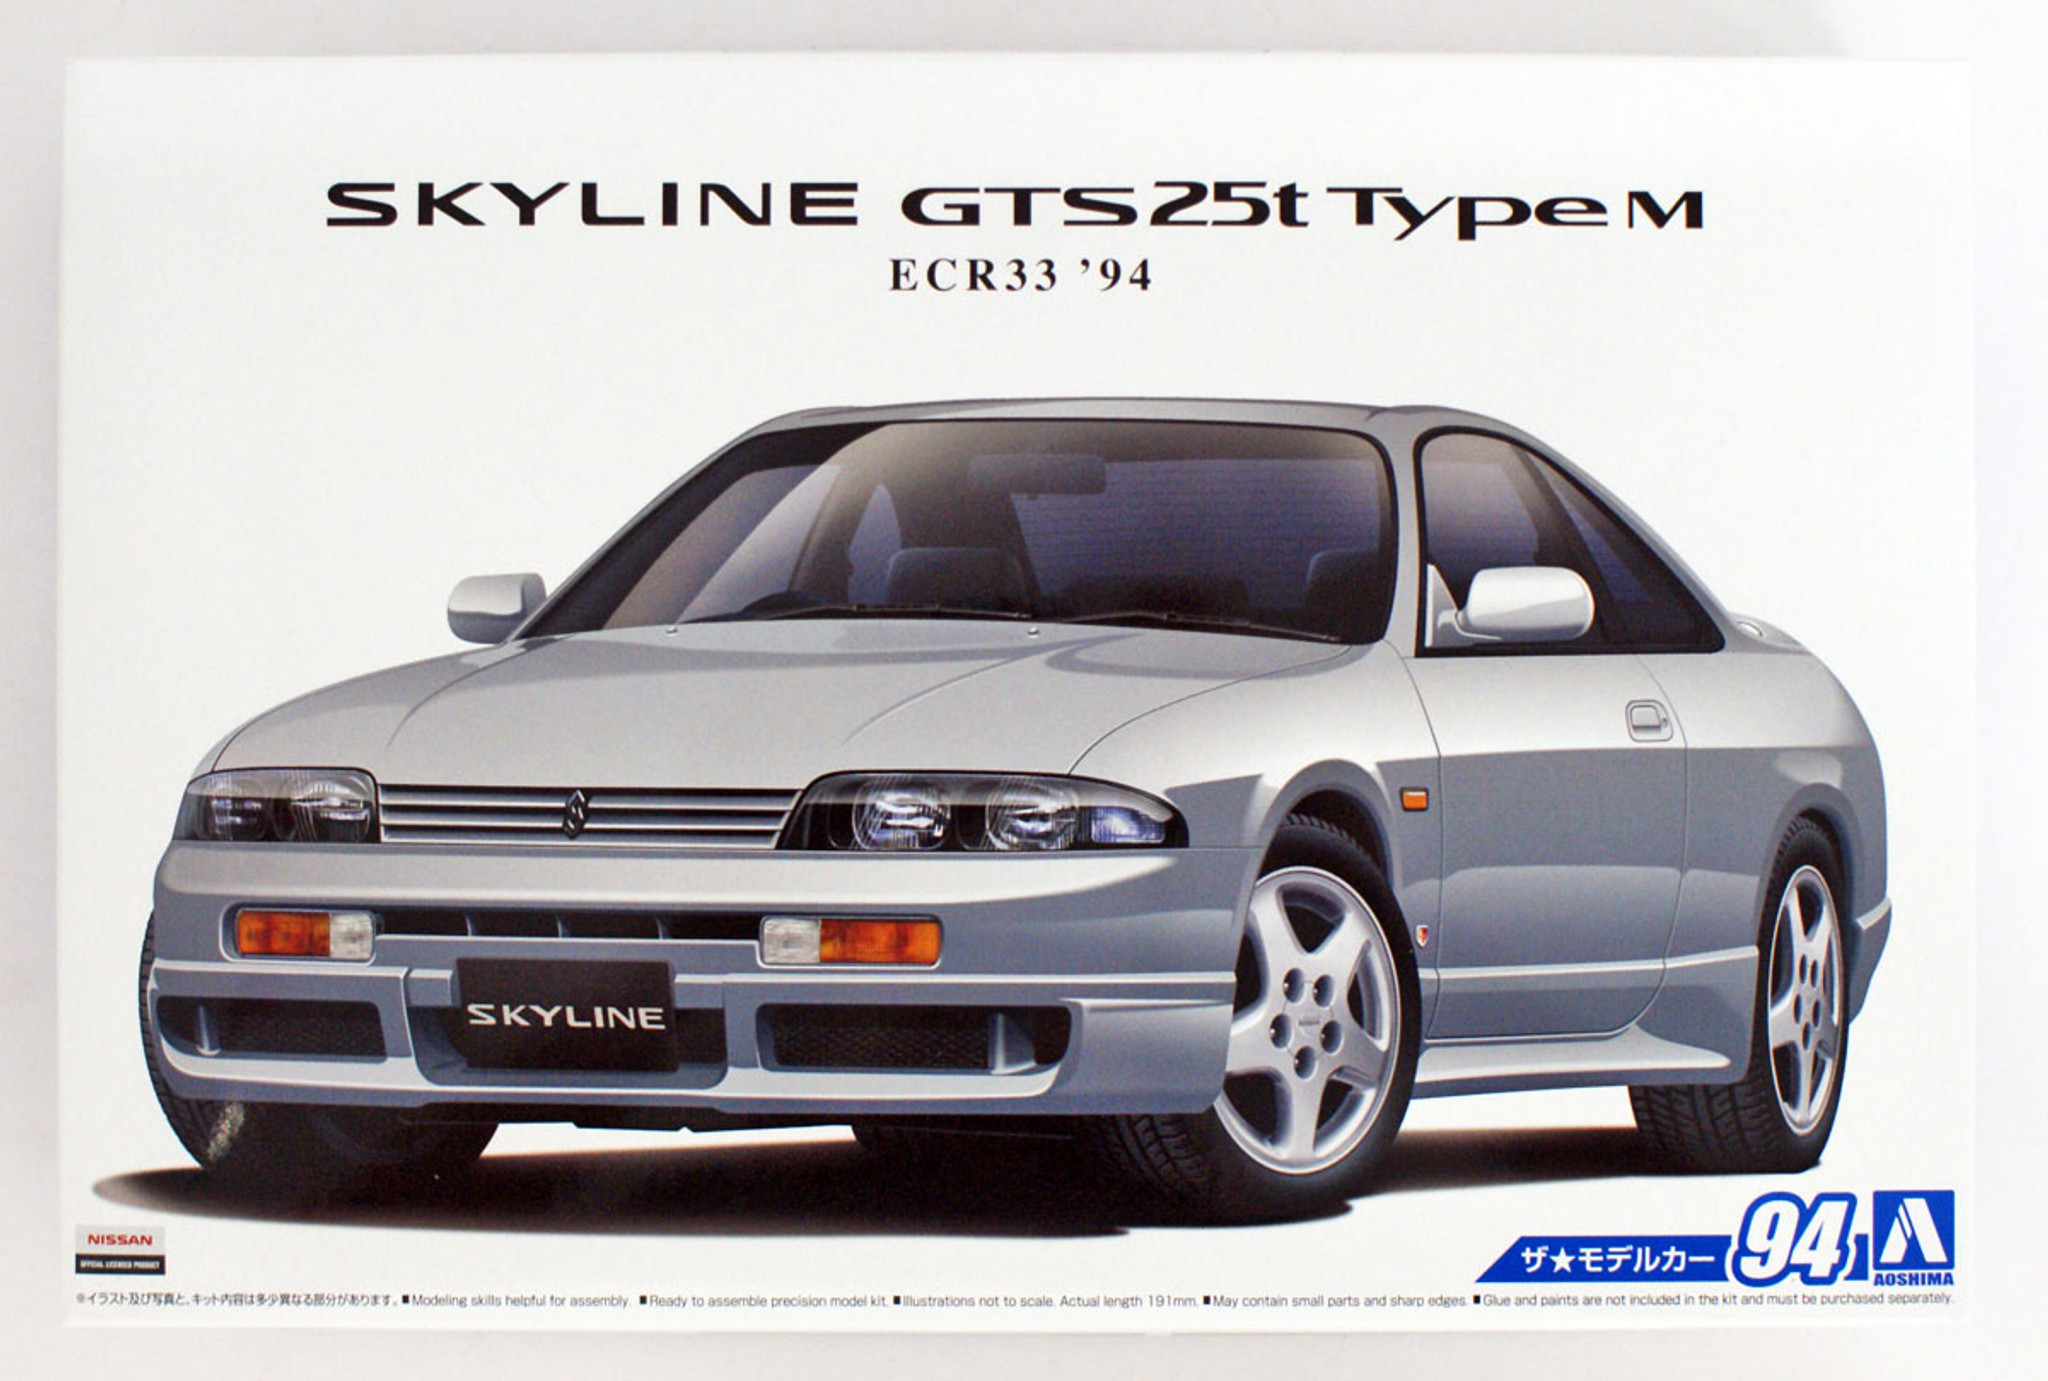 Parts Of A Car 94 >> Aoshima 56547 The Model Car 94 Nissan Ecr33 Skyline Gts25t Type M 94 1 24 Scale